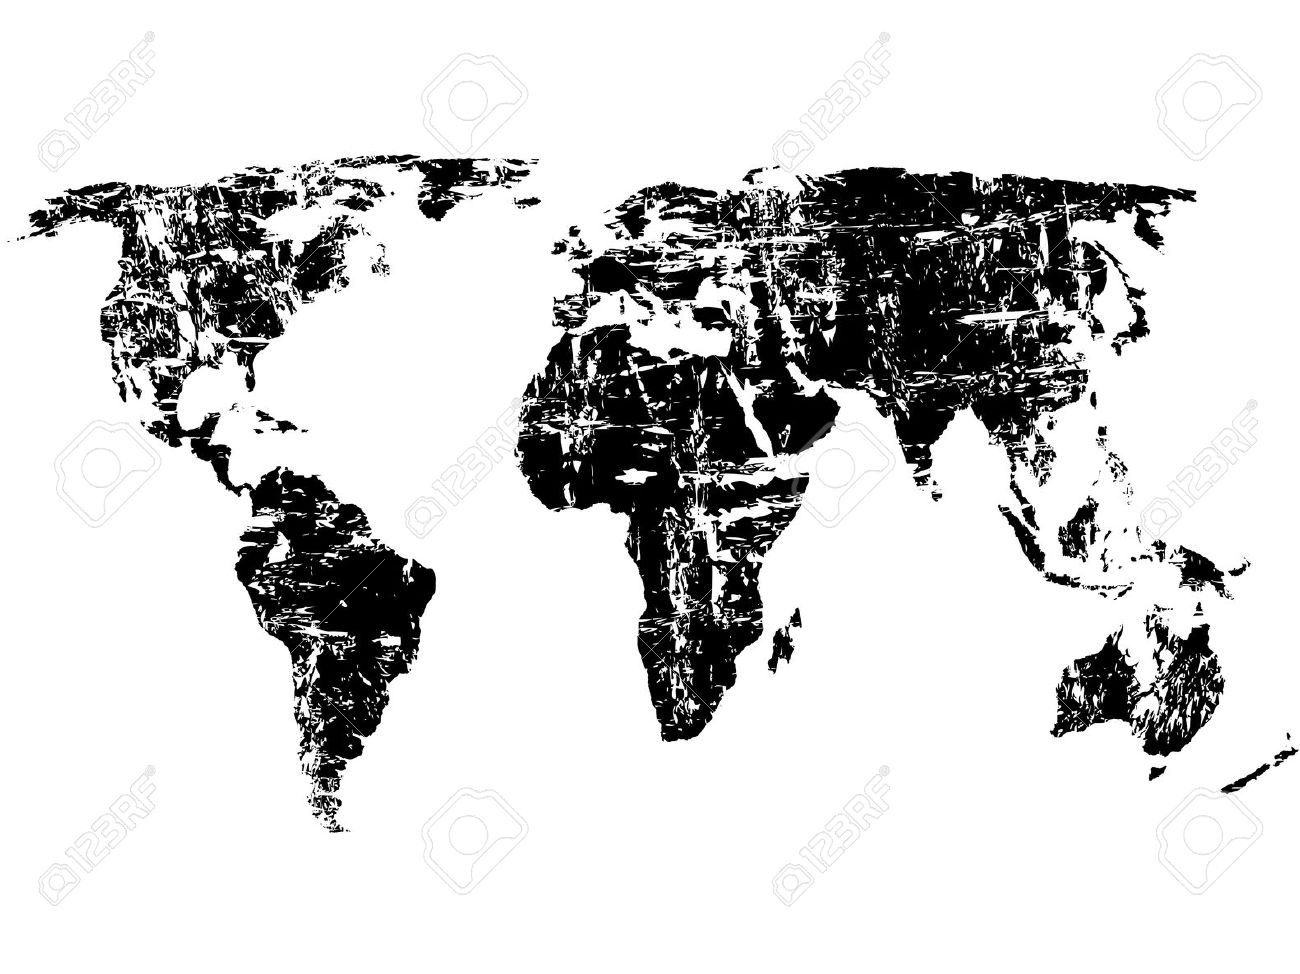 Black and white world map with continents labeled best of how to new world map wallpaper black and white world gumiabroncs Images